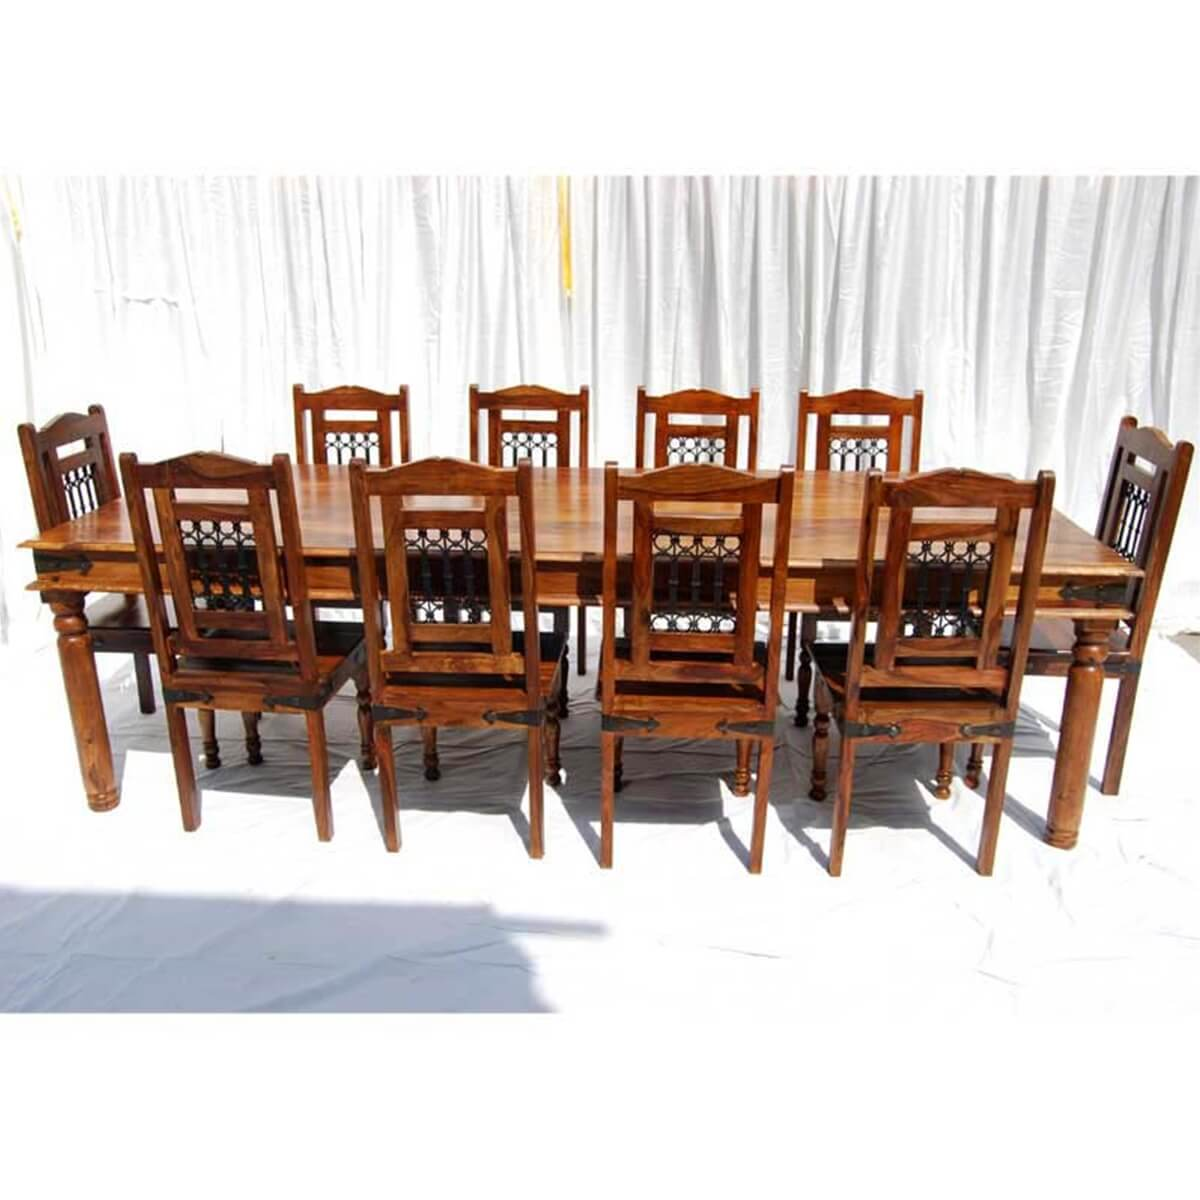 Solid wood large rustic dining room table chair buffet for Large dining room sets